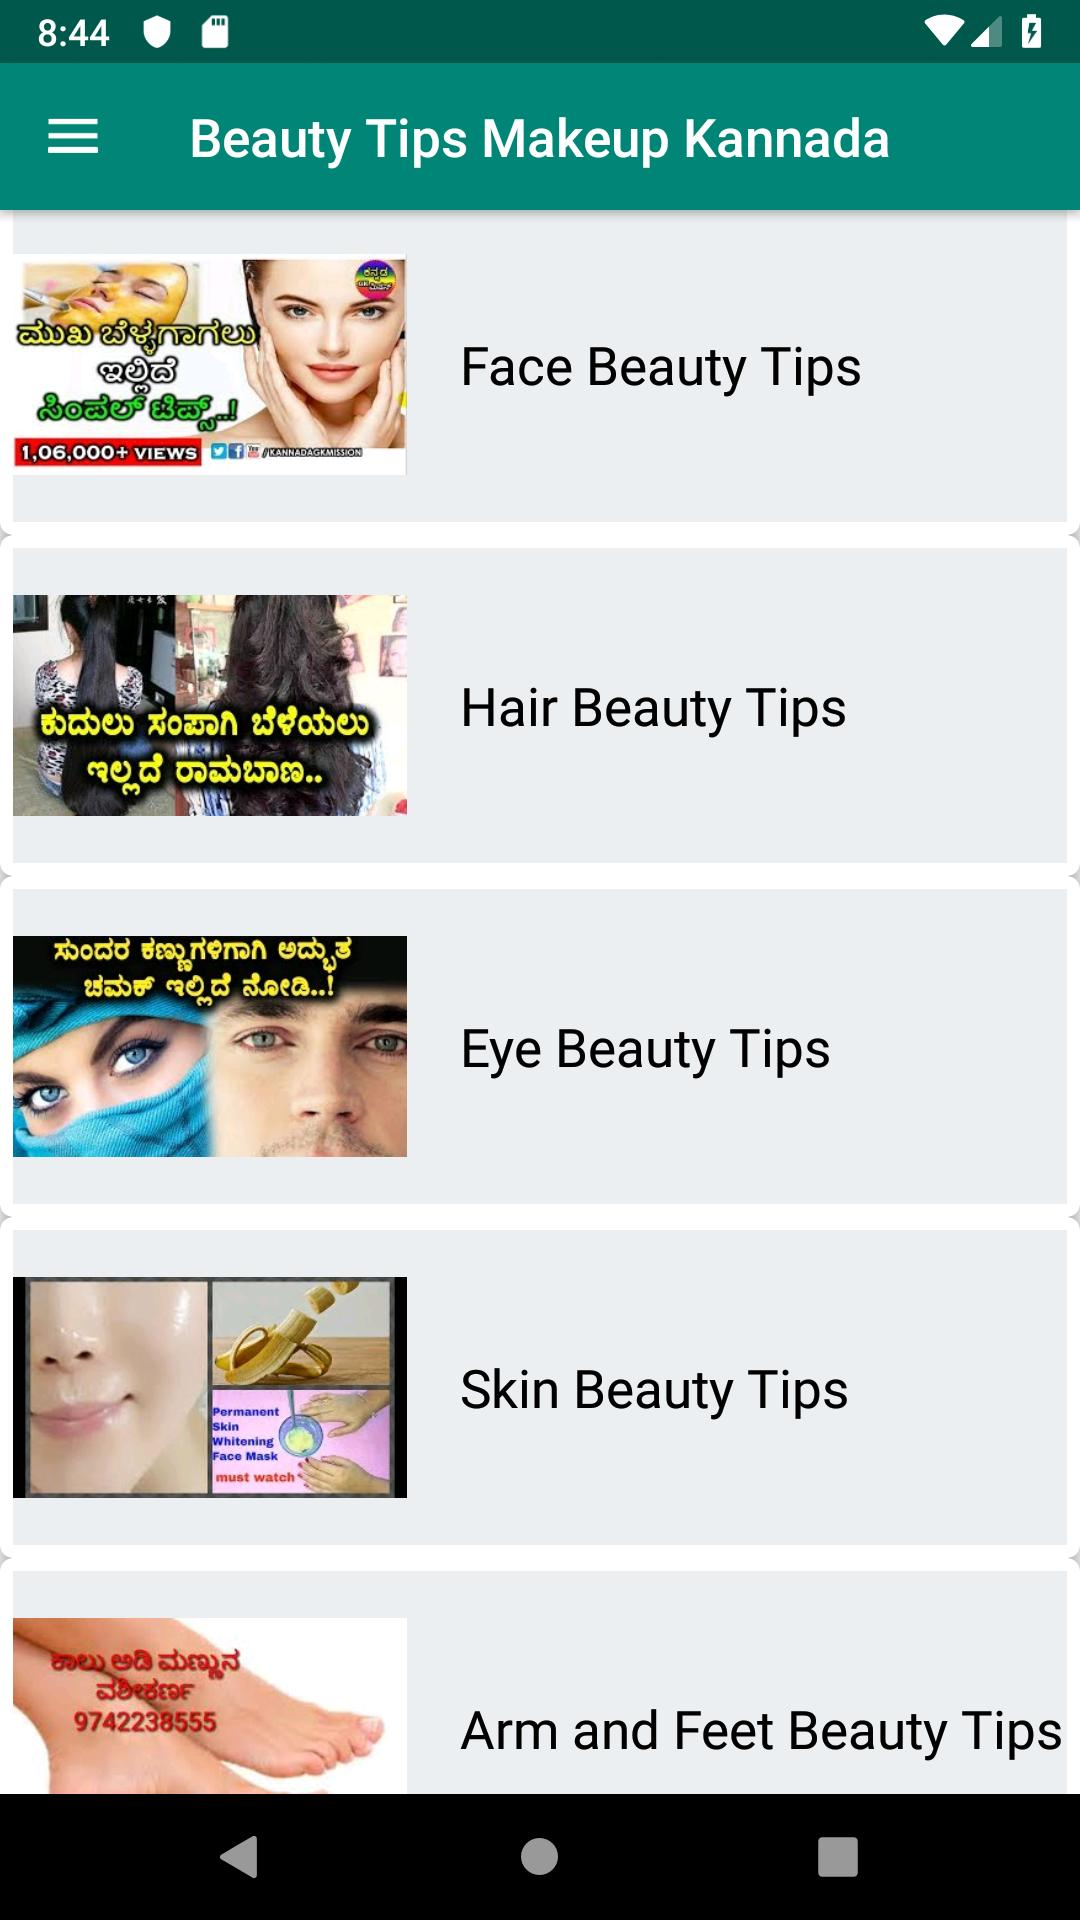 Kannada Beauty Tips Makeup Tips for Android - APK Download